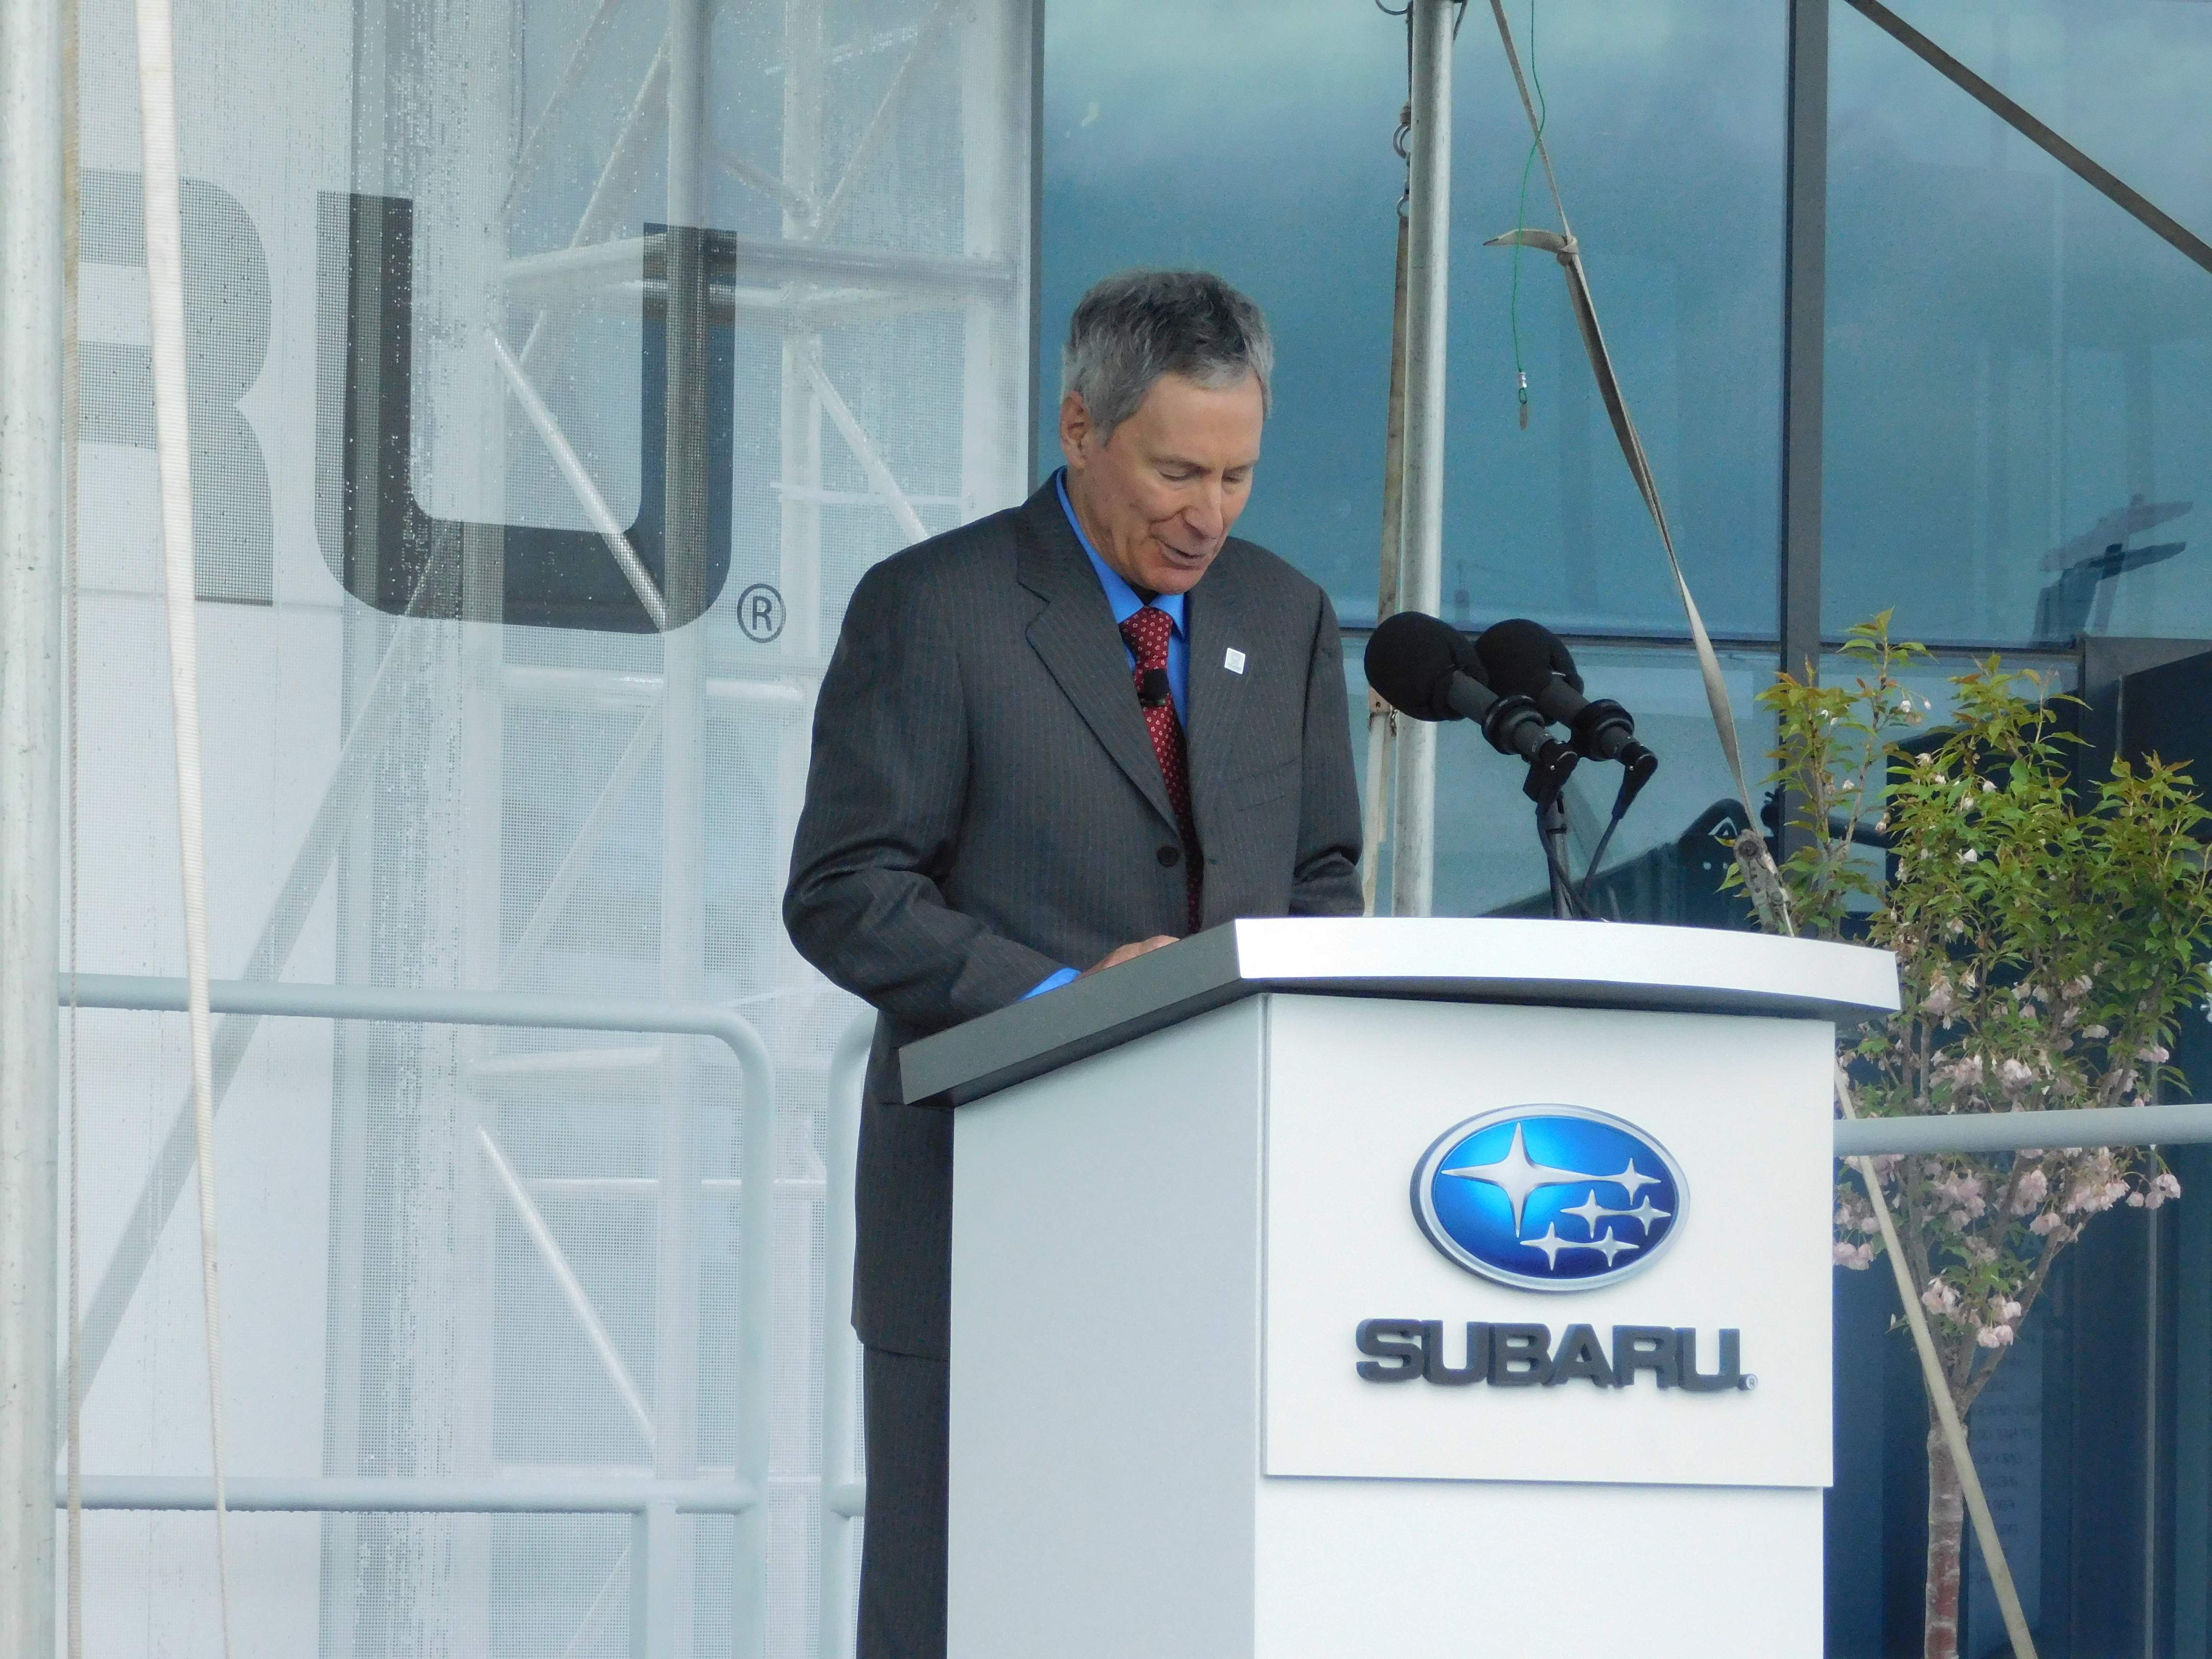 Subaru CEO Thomas J. Doll at the grand opening of Subaru of America's corporate headquarters in Camden.